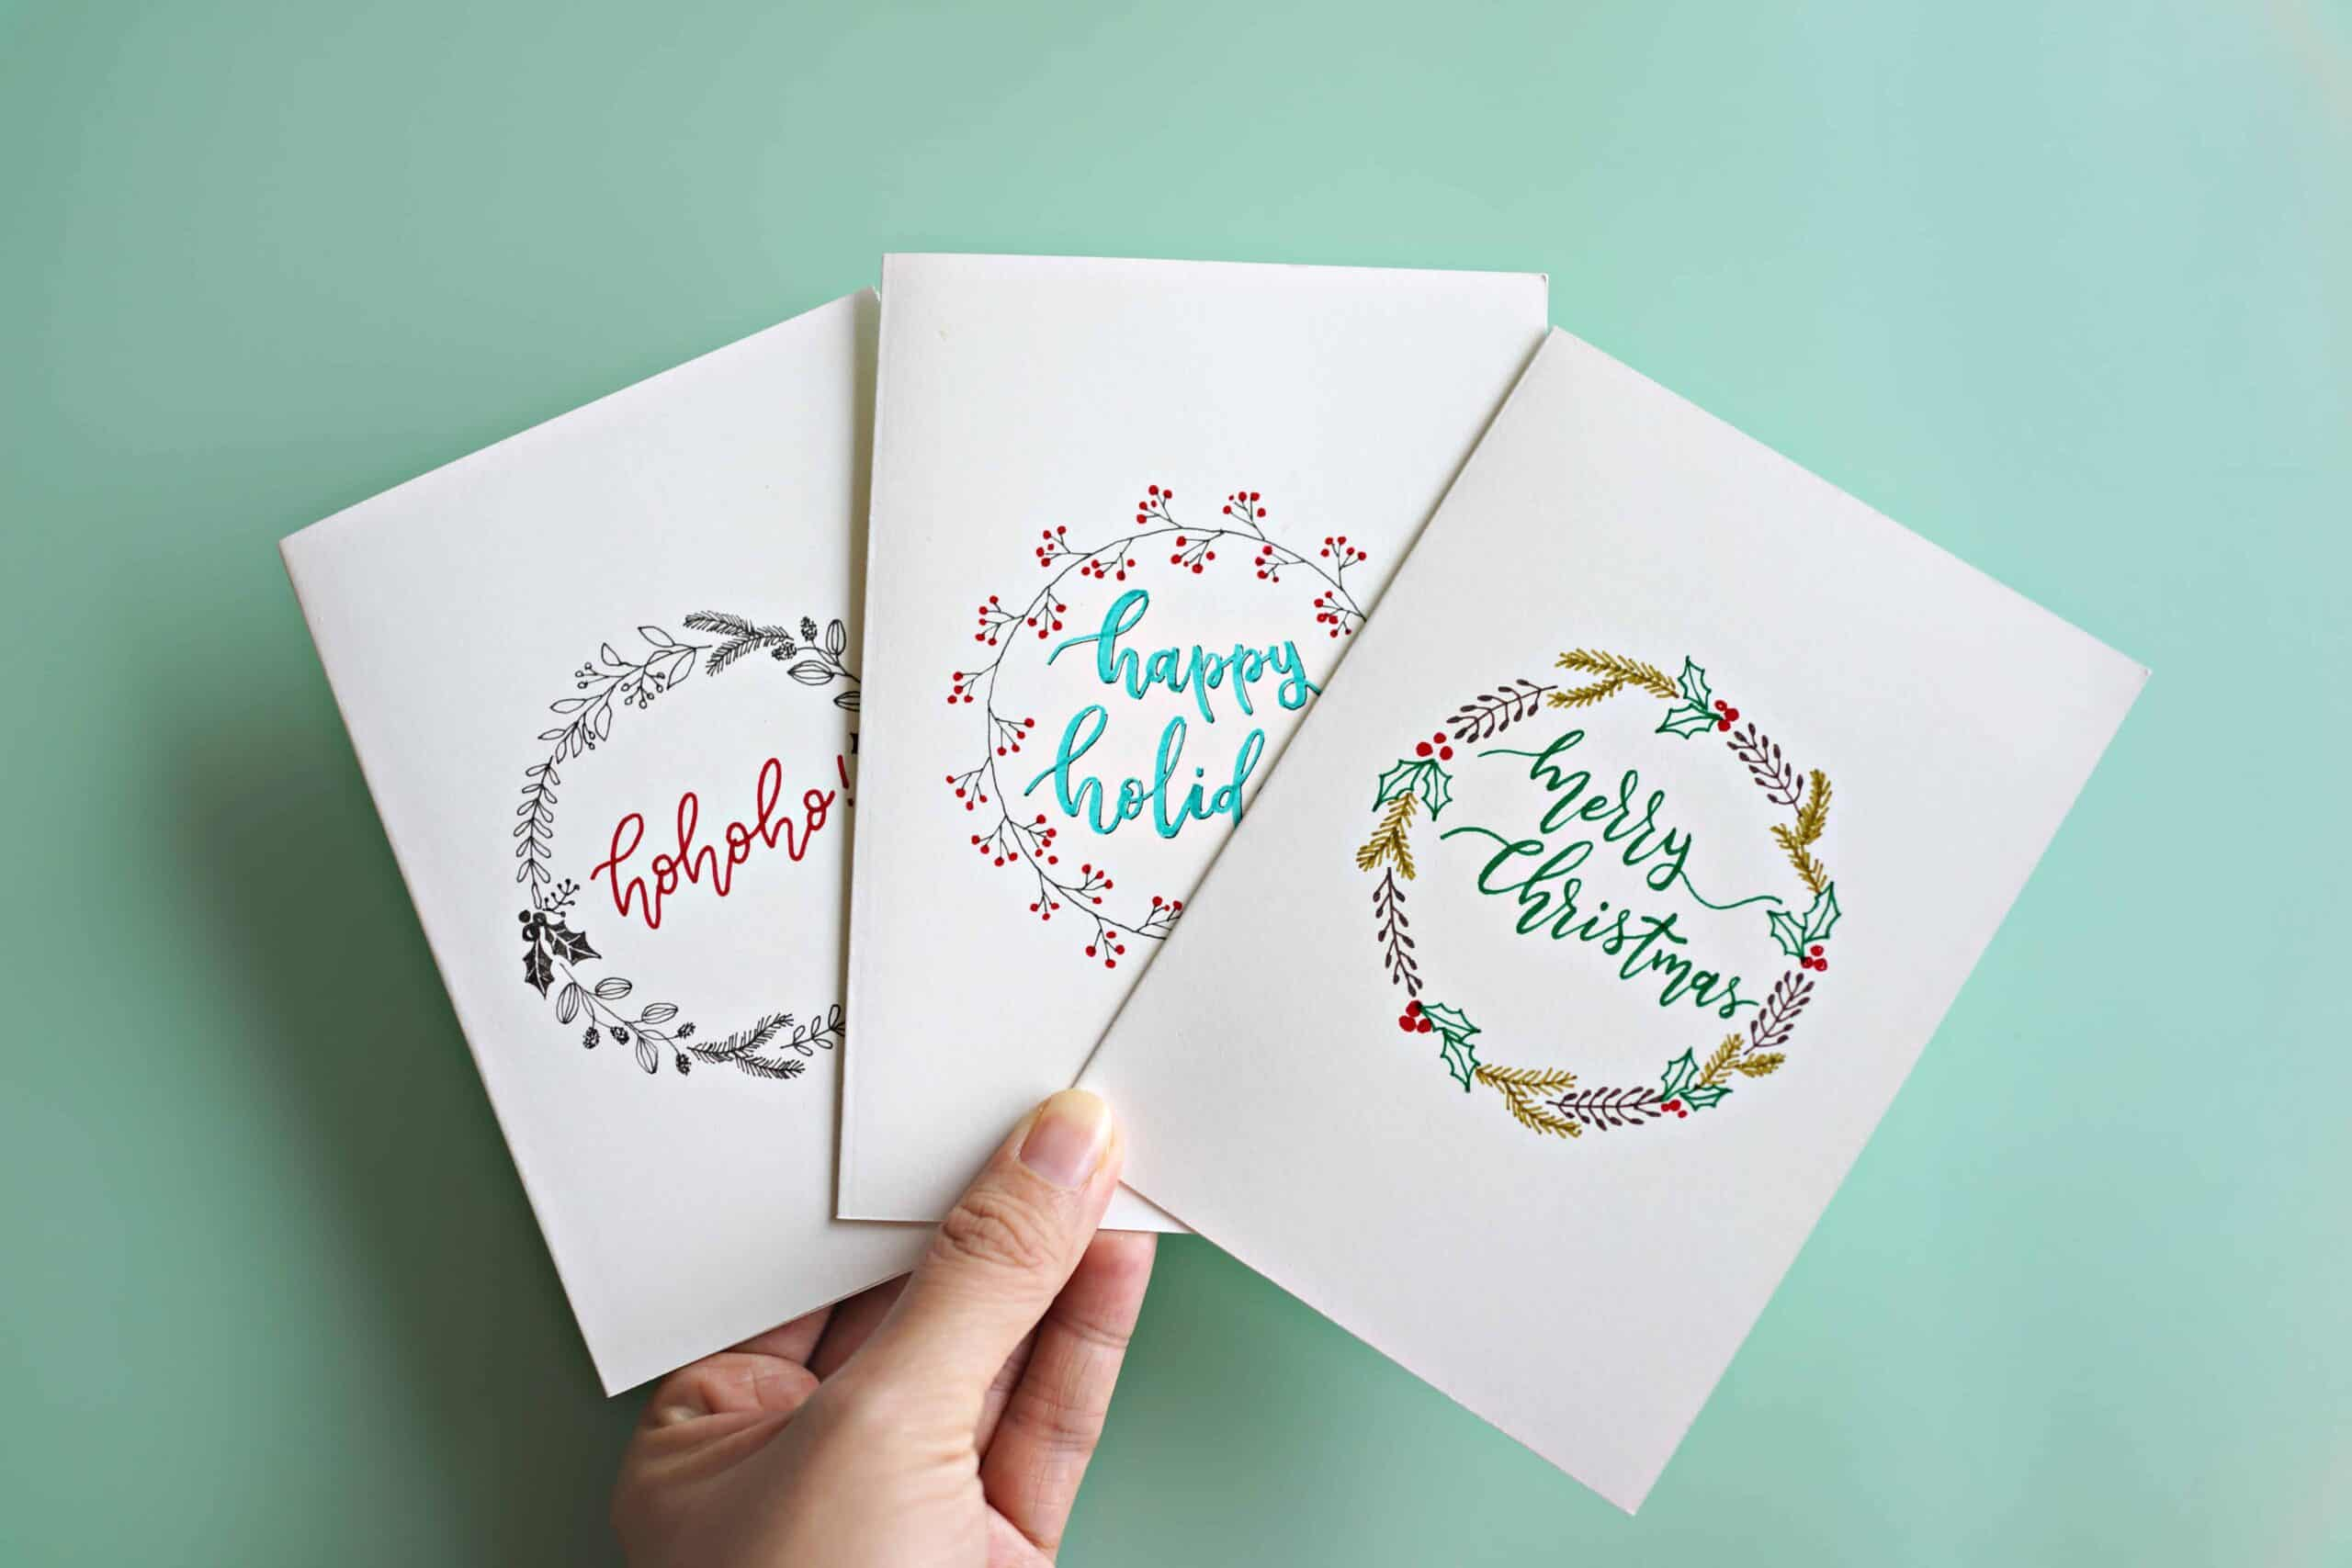 Why You Should Send Greeting Cards Even If You're A Millennial